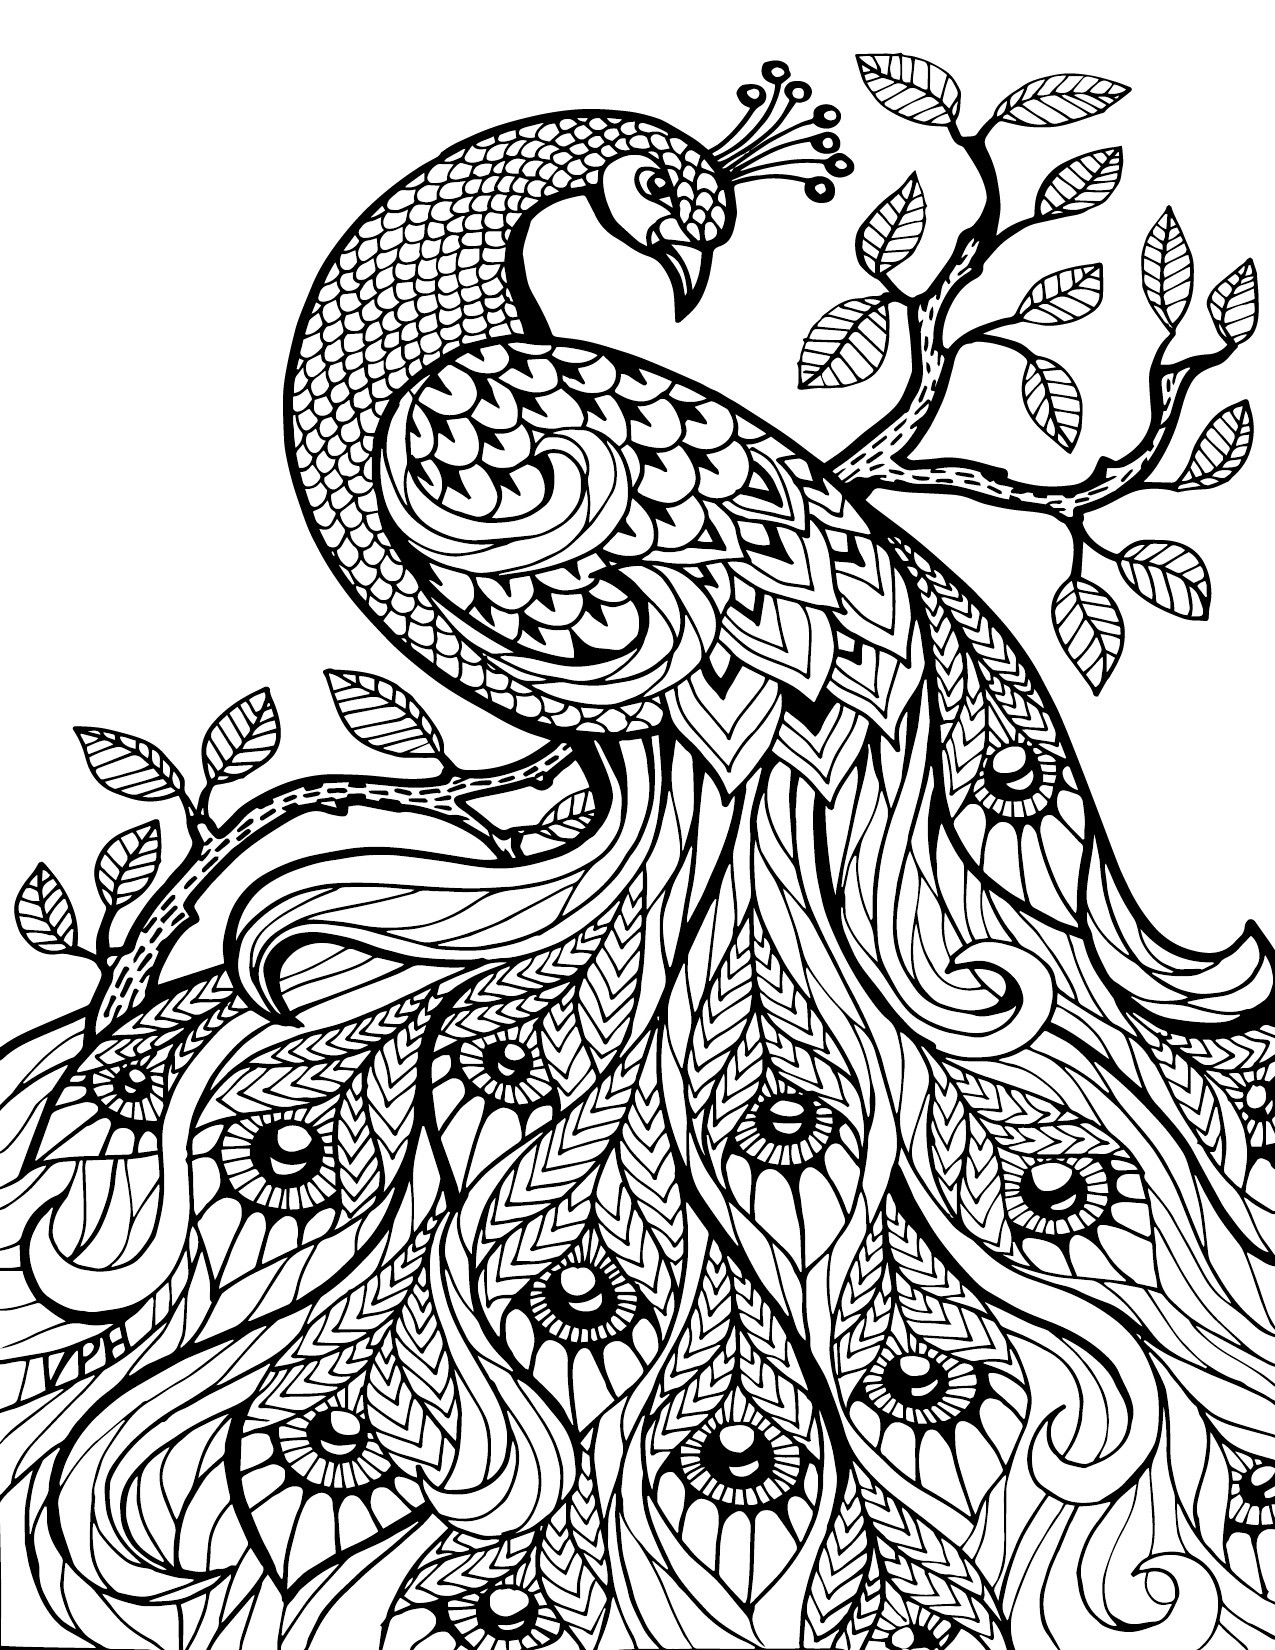 Adult Coloring Book Download  Free Download Adult Coloring Pages